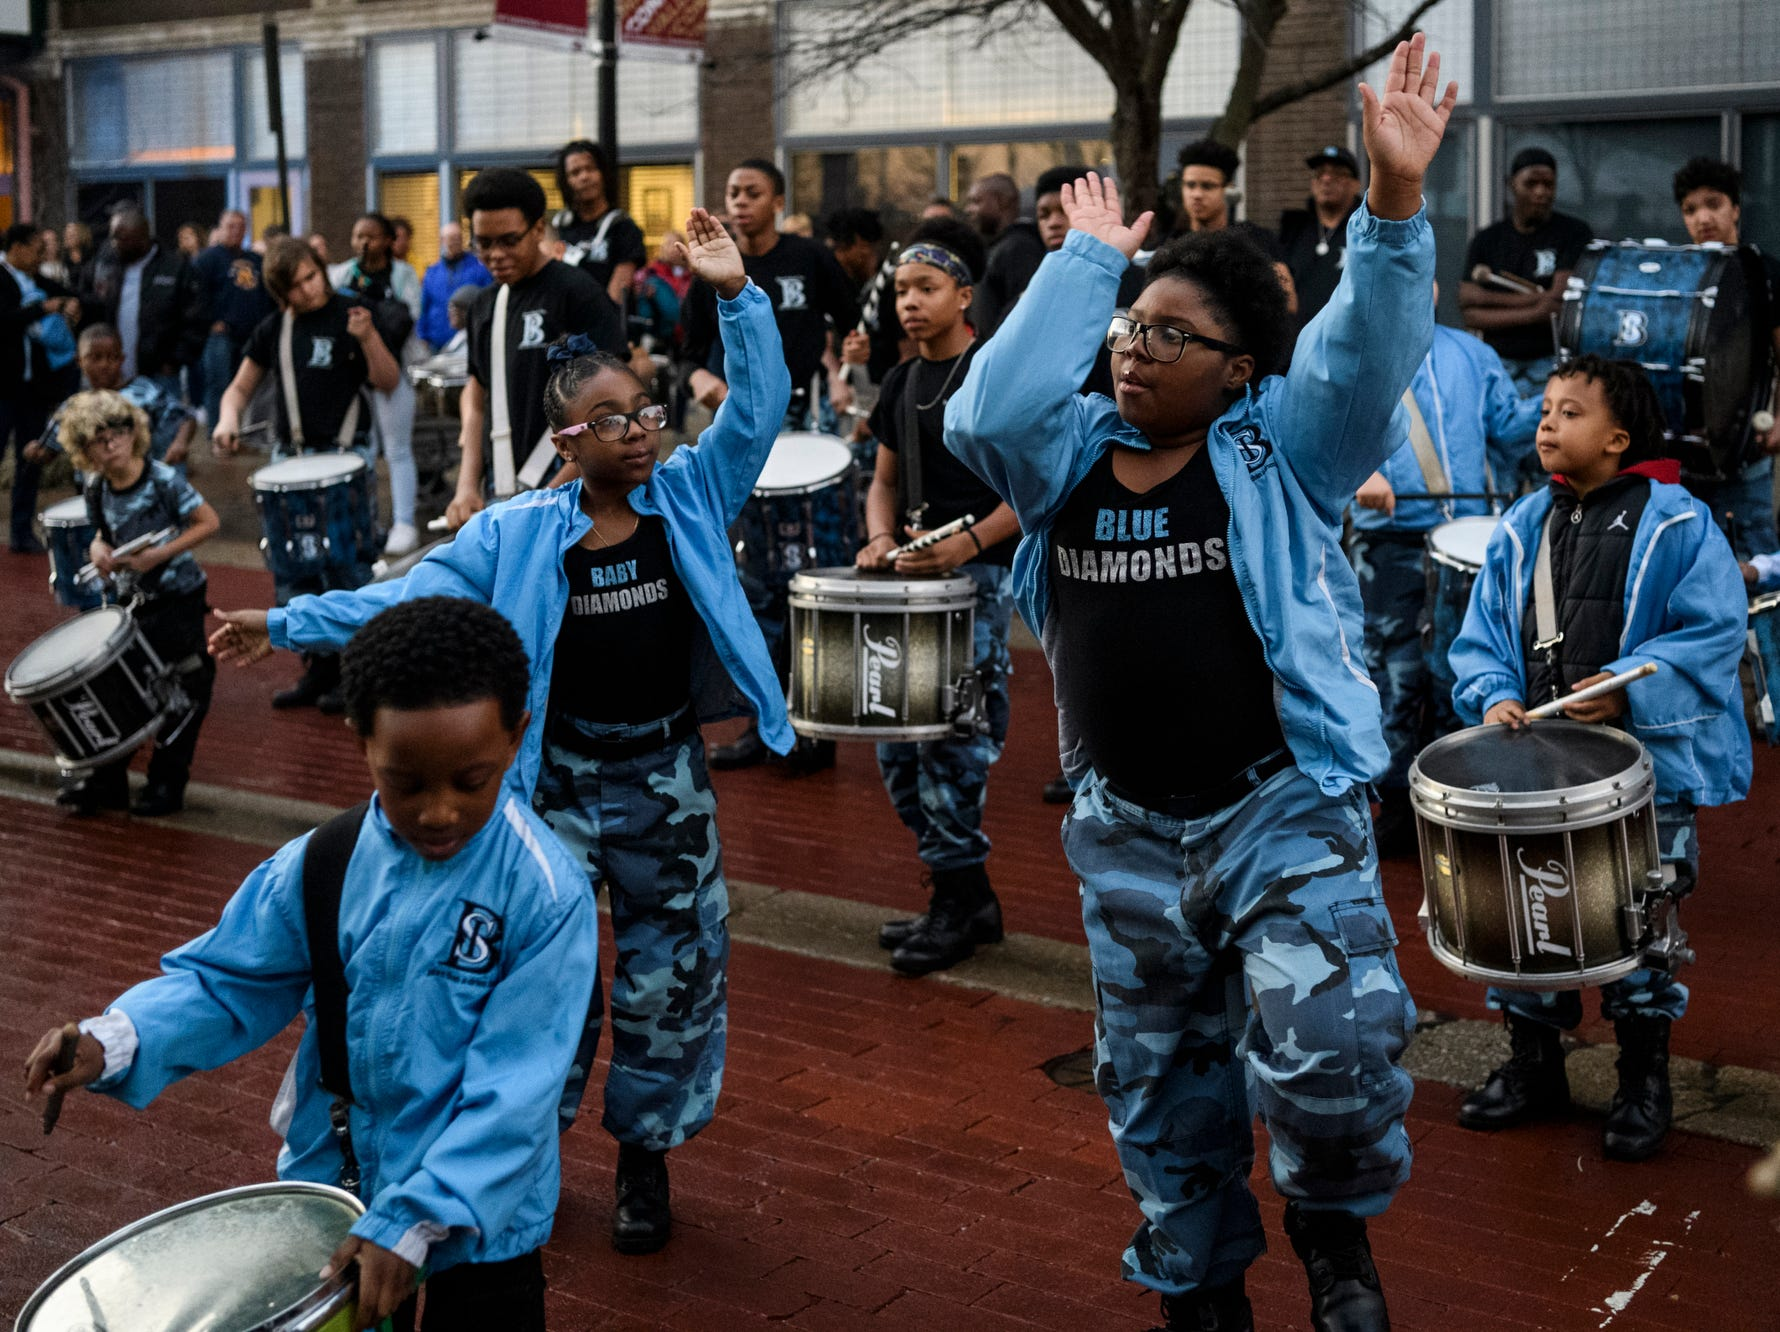 Jay'mon Hale, front left, Micah Smith, back left, and Bri'Airah Bryant, right, perform with the Boom Squad on Main Street in downtown Evansville as people wait to get into the Ford Center for the Ohio Valley Conference men's championship game, Saturday, March 9, 2019.